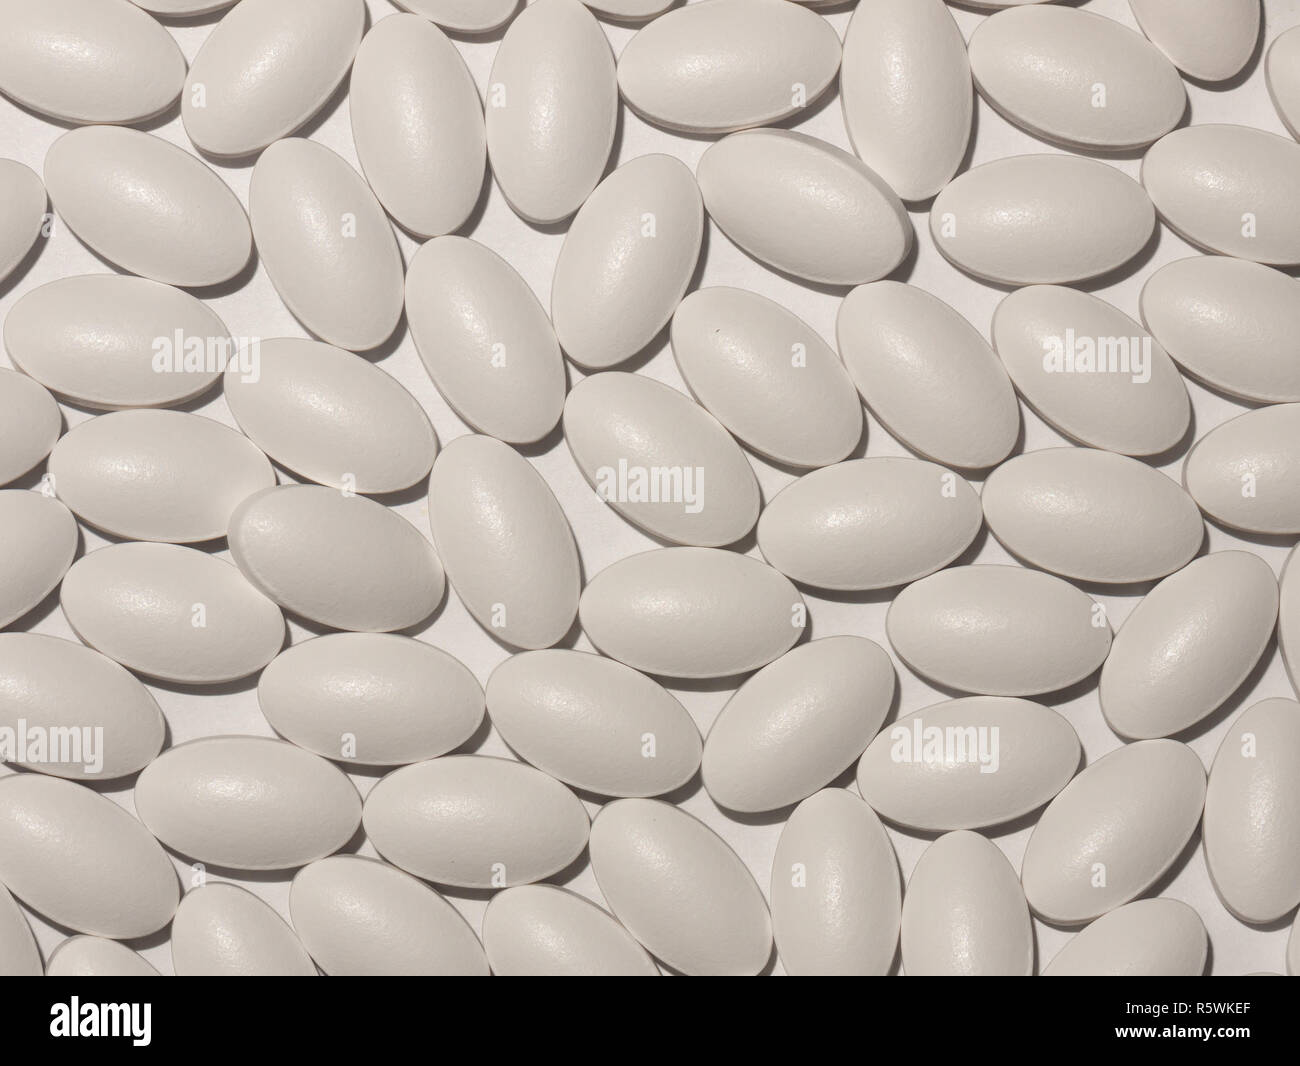 many white generic tablet pills on a white background - Stock Image